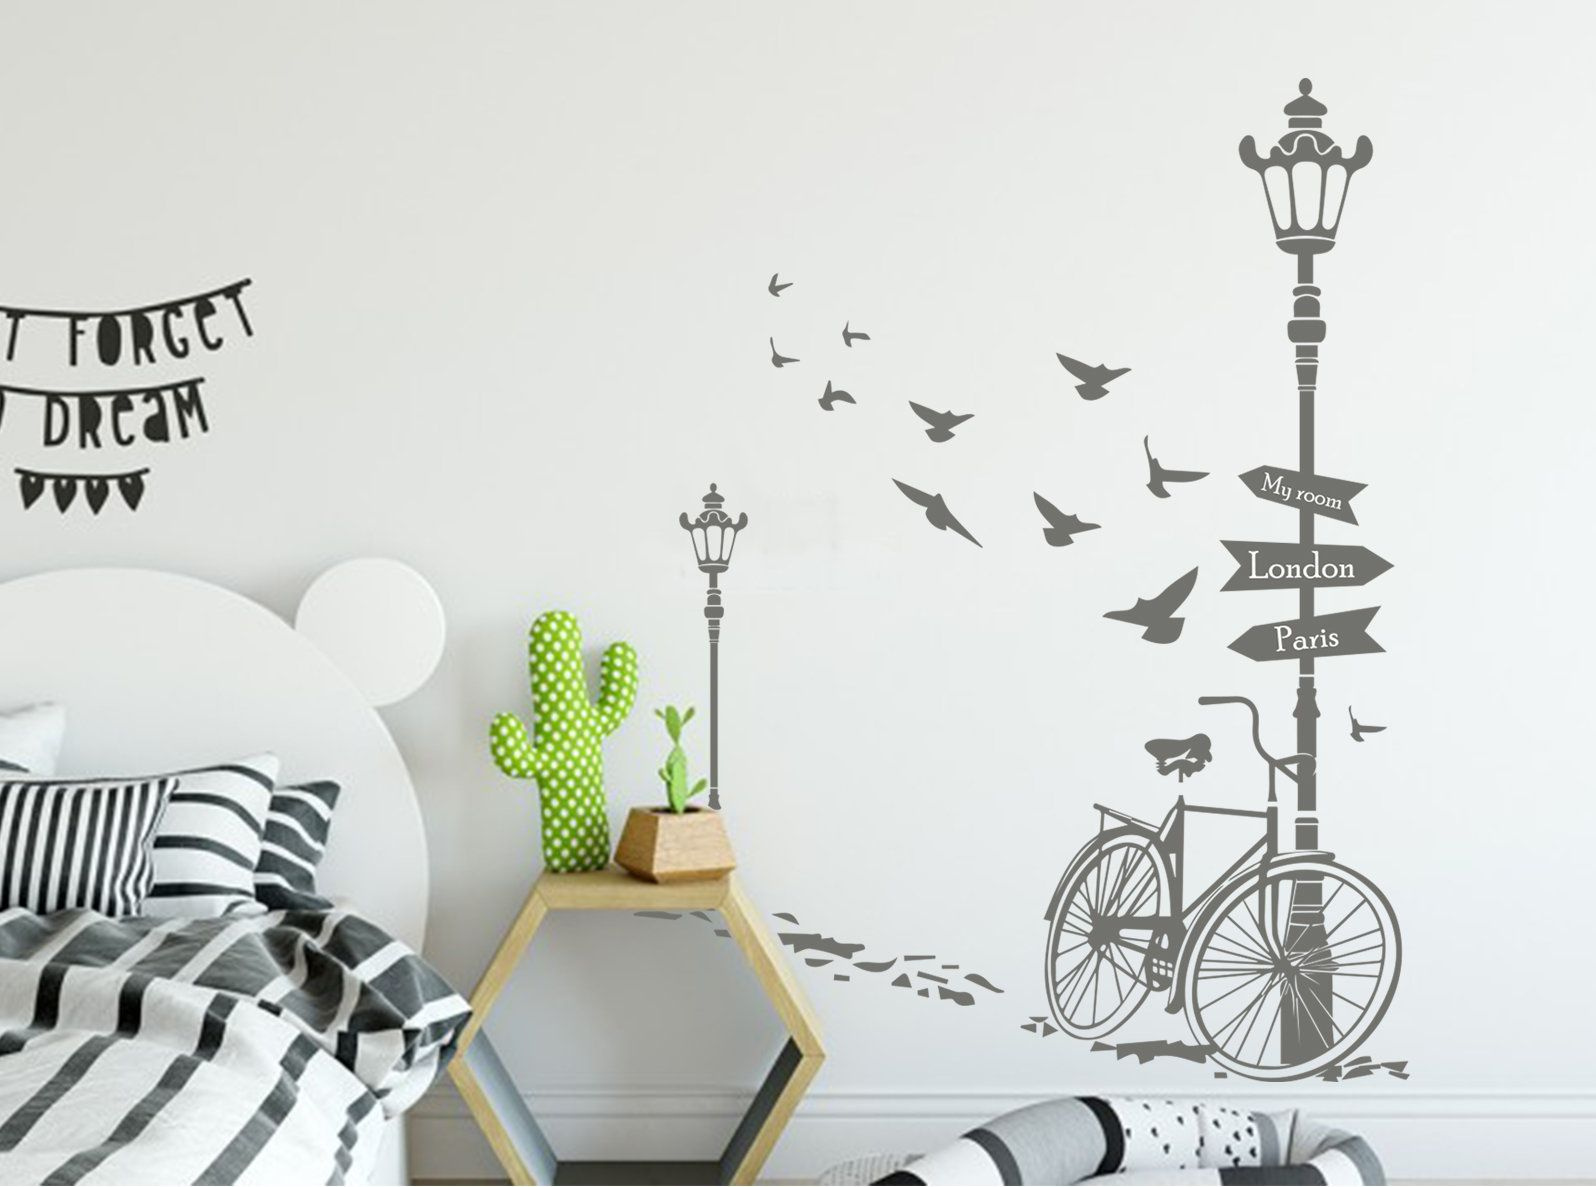 Entrance Wall Decor Bicycle Wall Decal Street Lamp Decal Birds